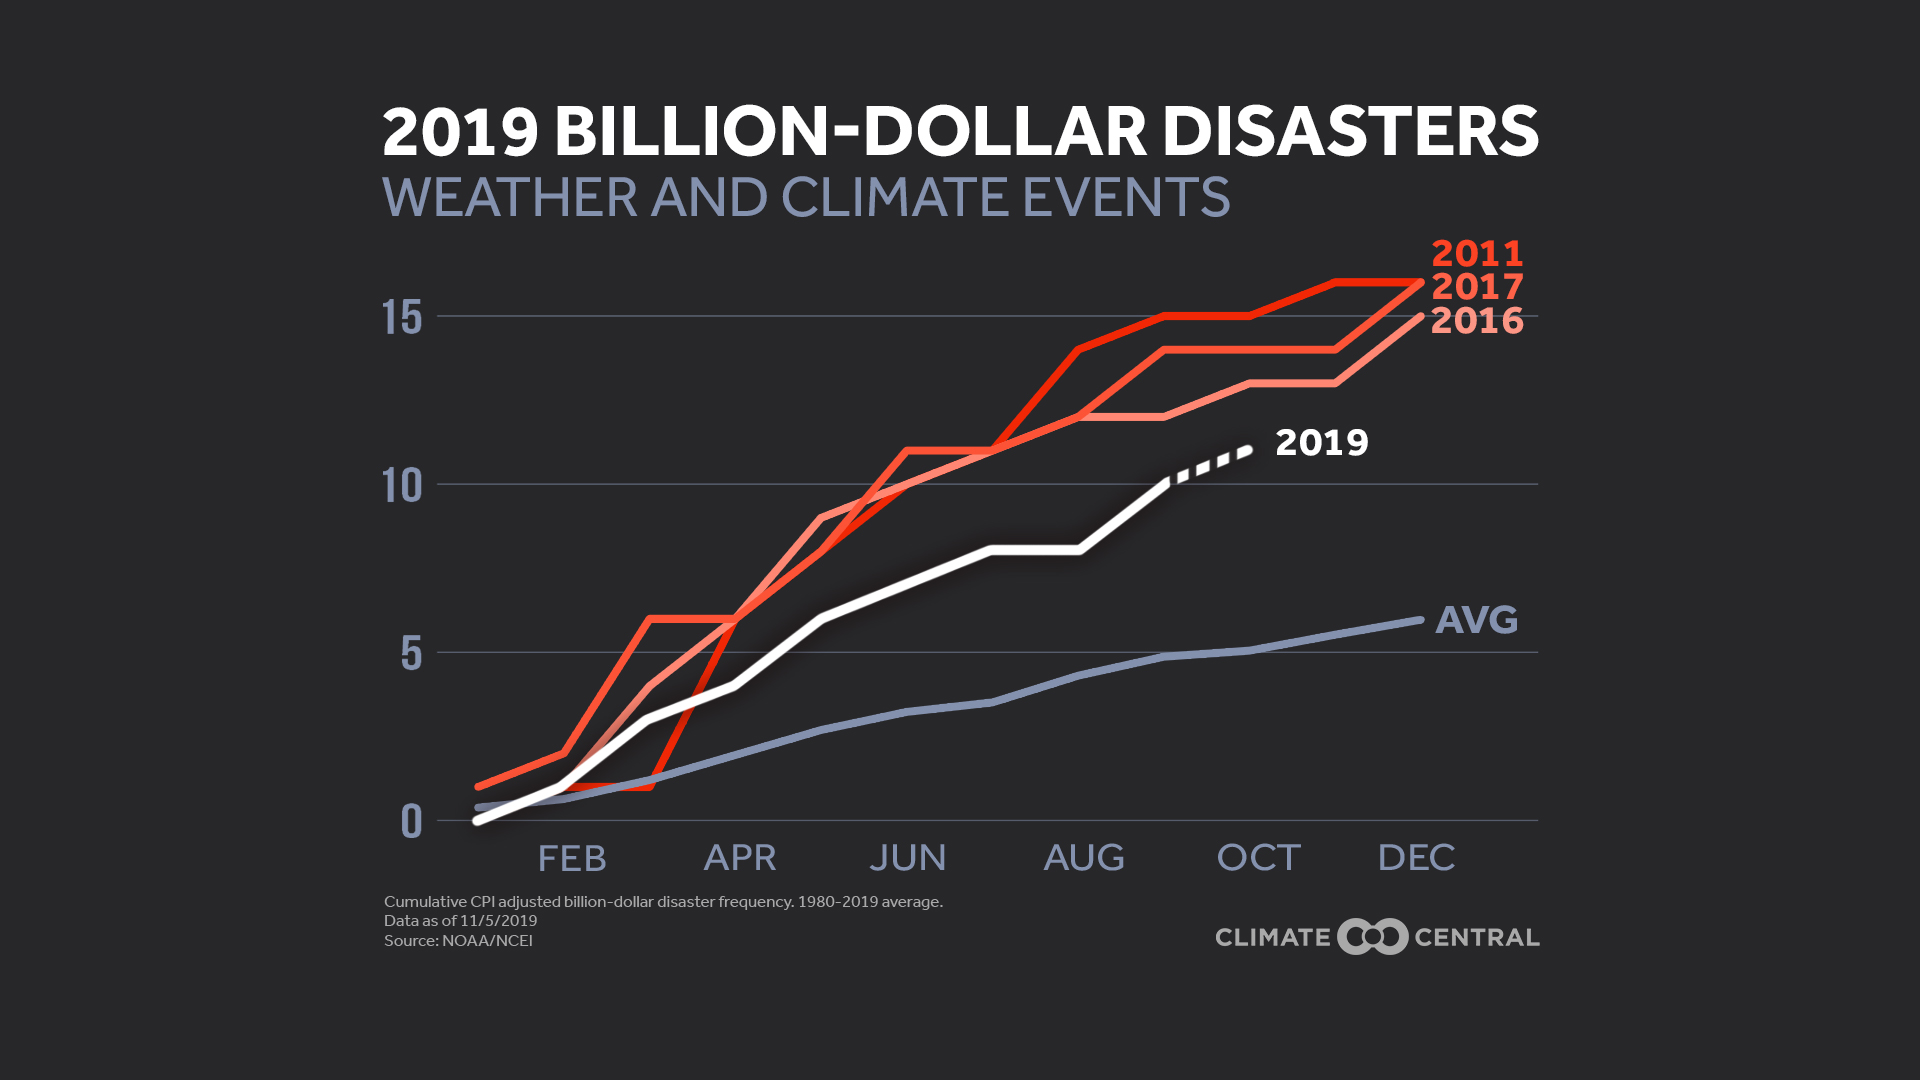 2019 Billion-Dollar Disasters